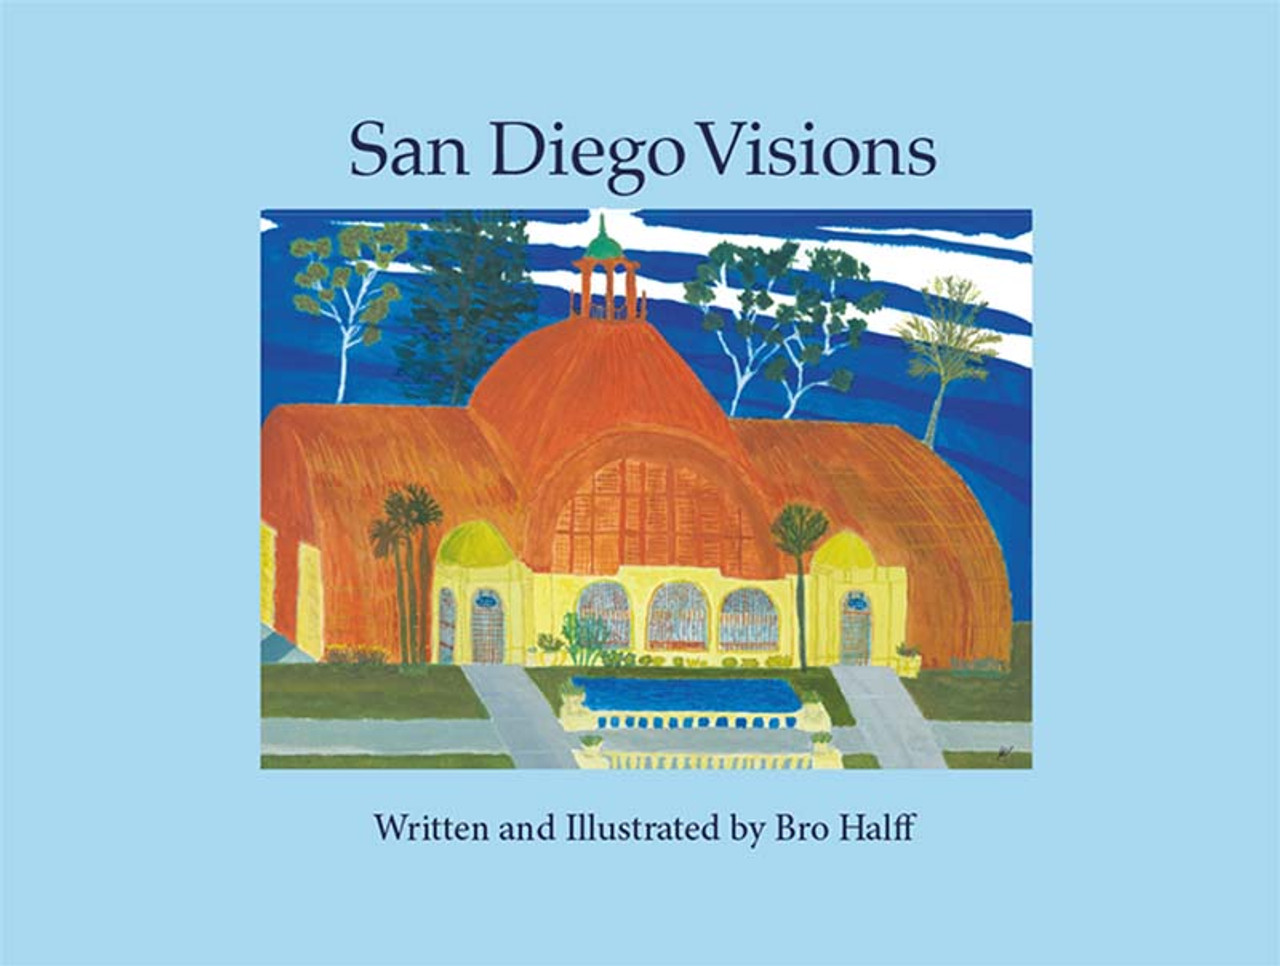 San Diego Visions (Hardcover)